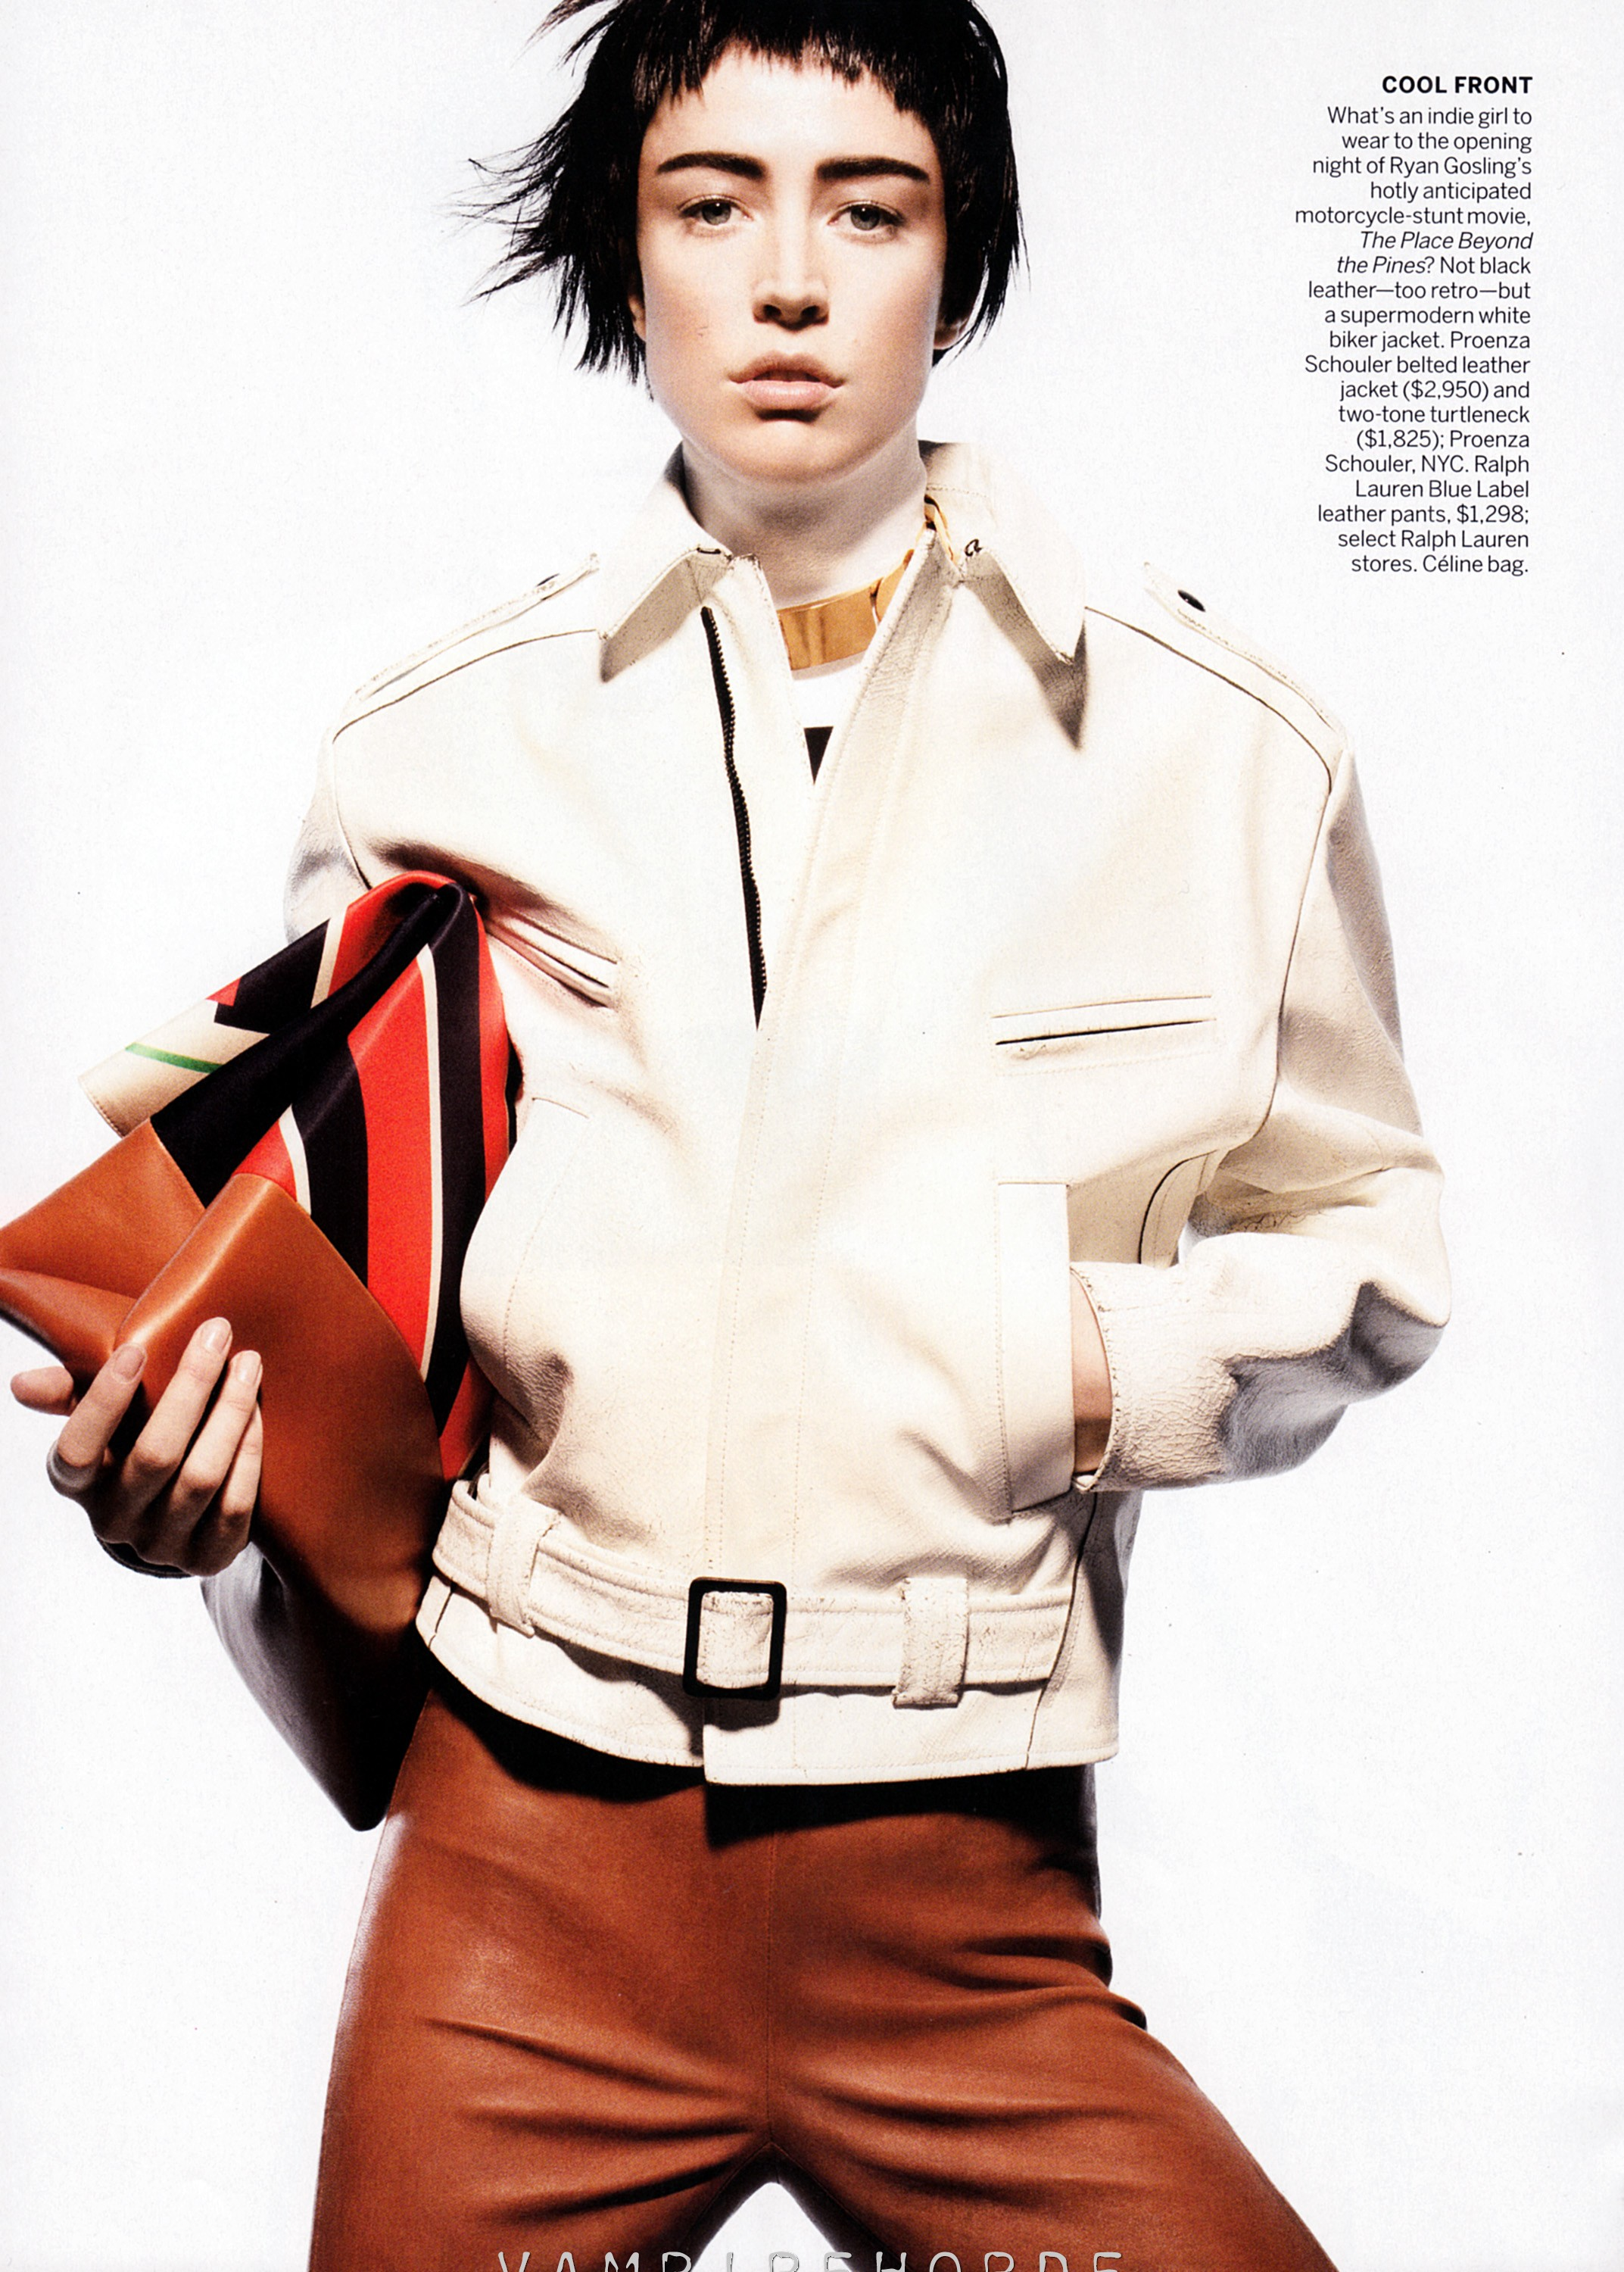 fashion_scans_remastered-raquel_zimmermann-vogue_usa-april_2013-scanned_by_vampirehorde-hq-5